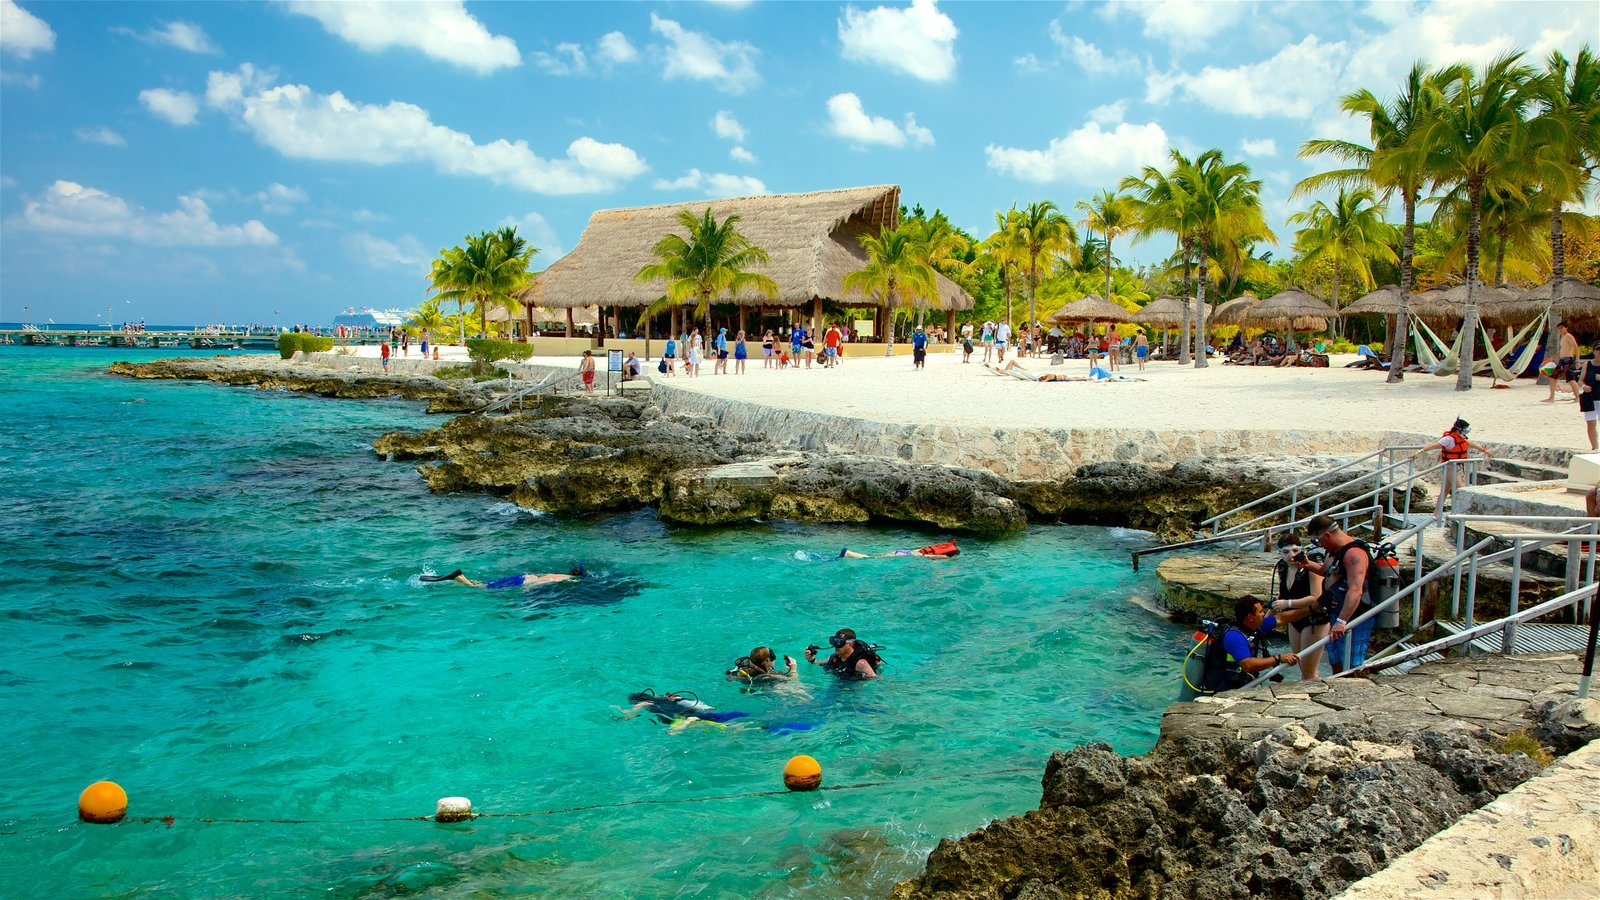 Cozumel Which Includes Tropical Scenes A Sandy Beach And General Coastal Views